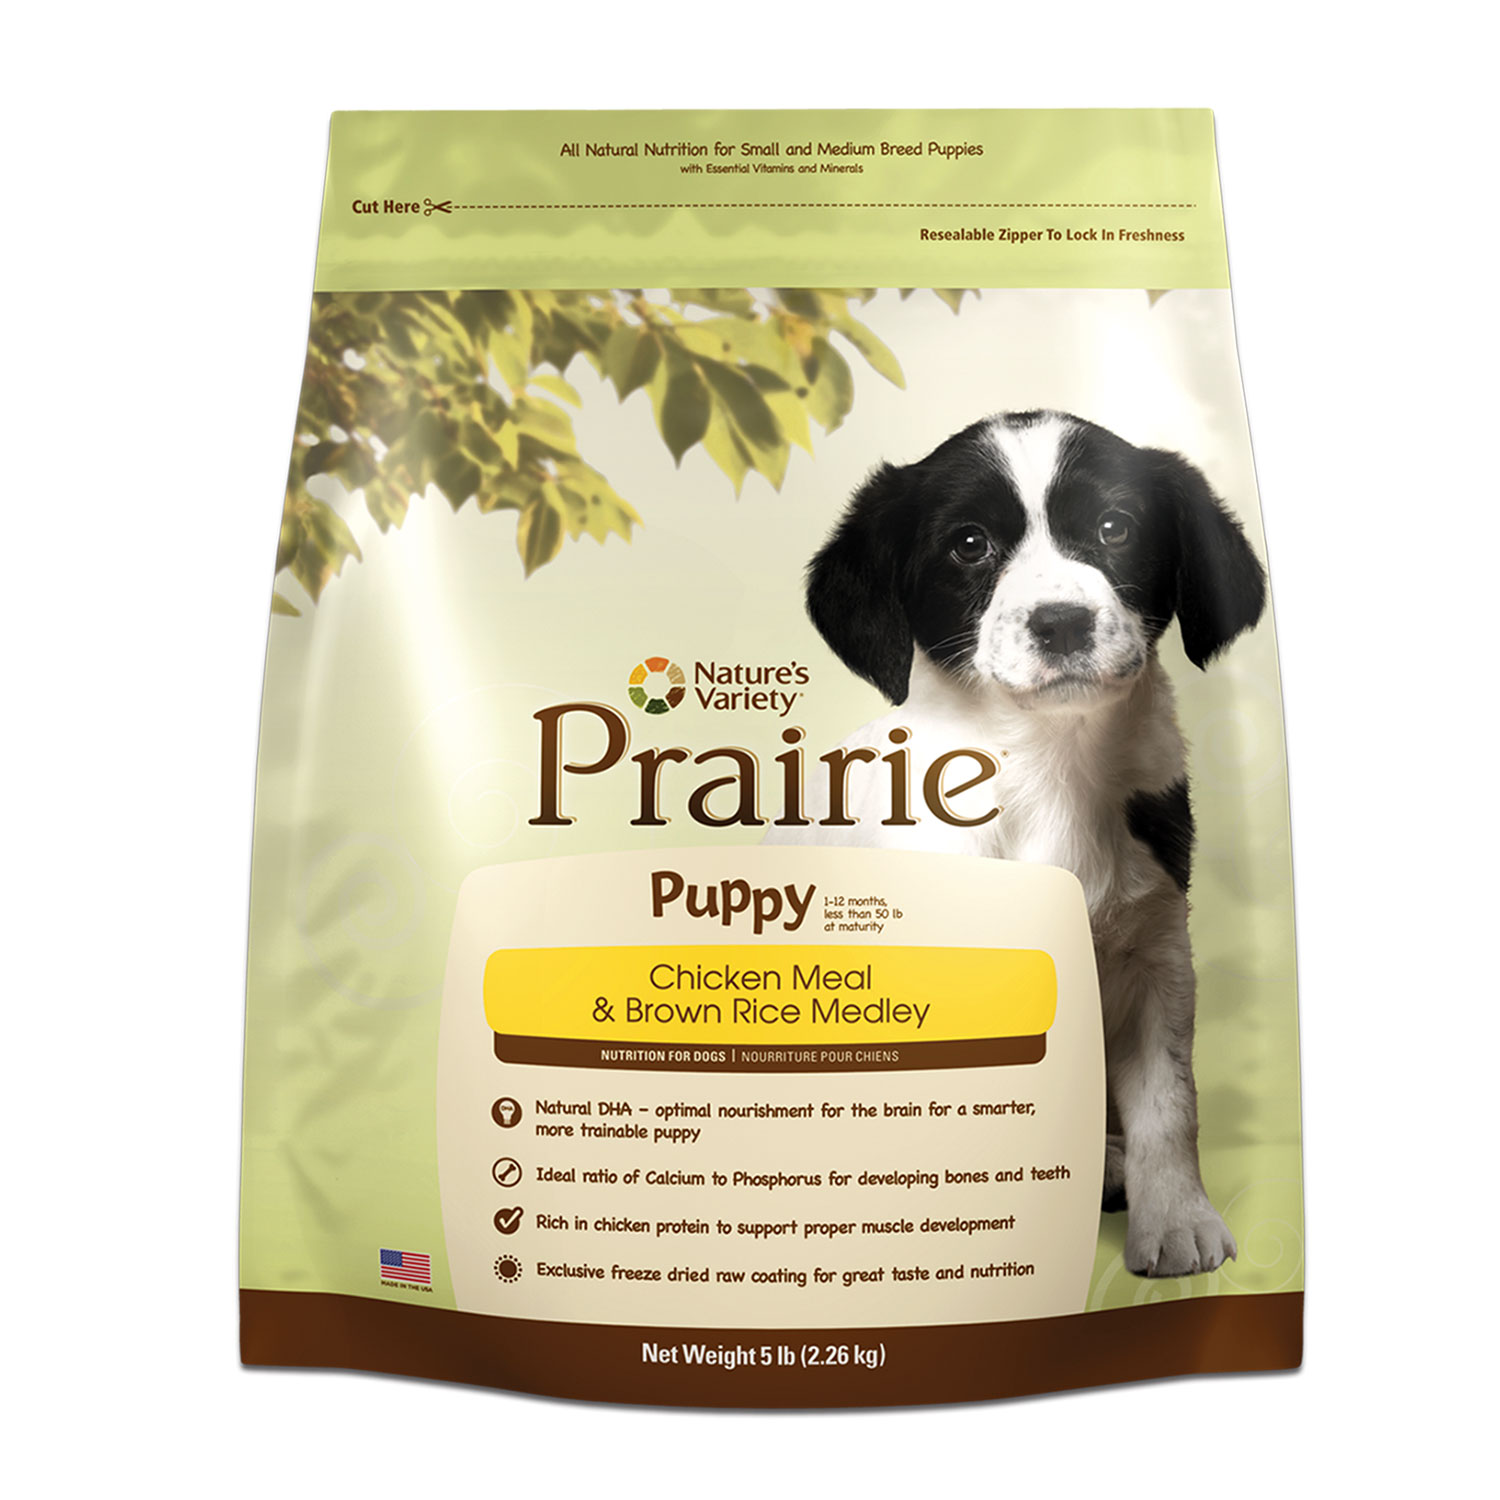 Nature's Variety Prairie Puppy